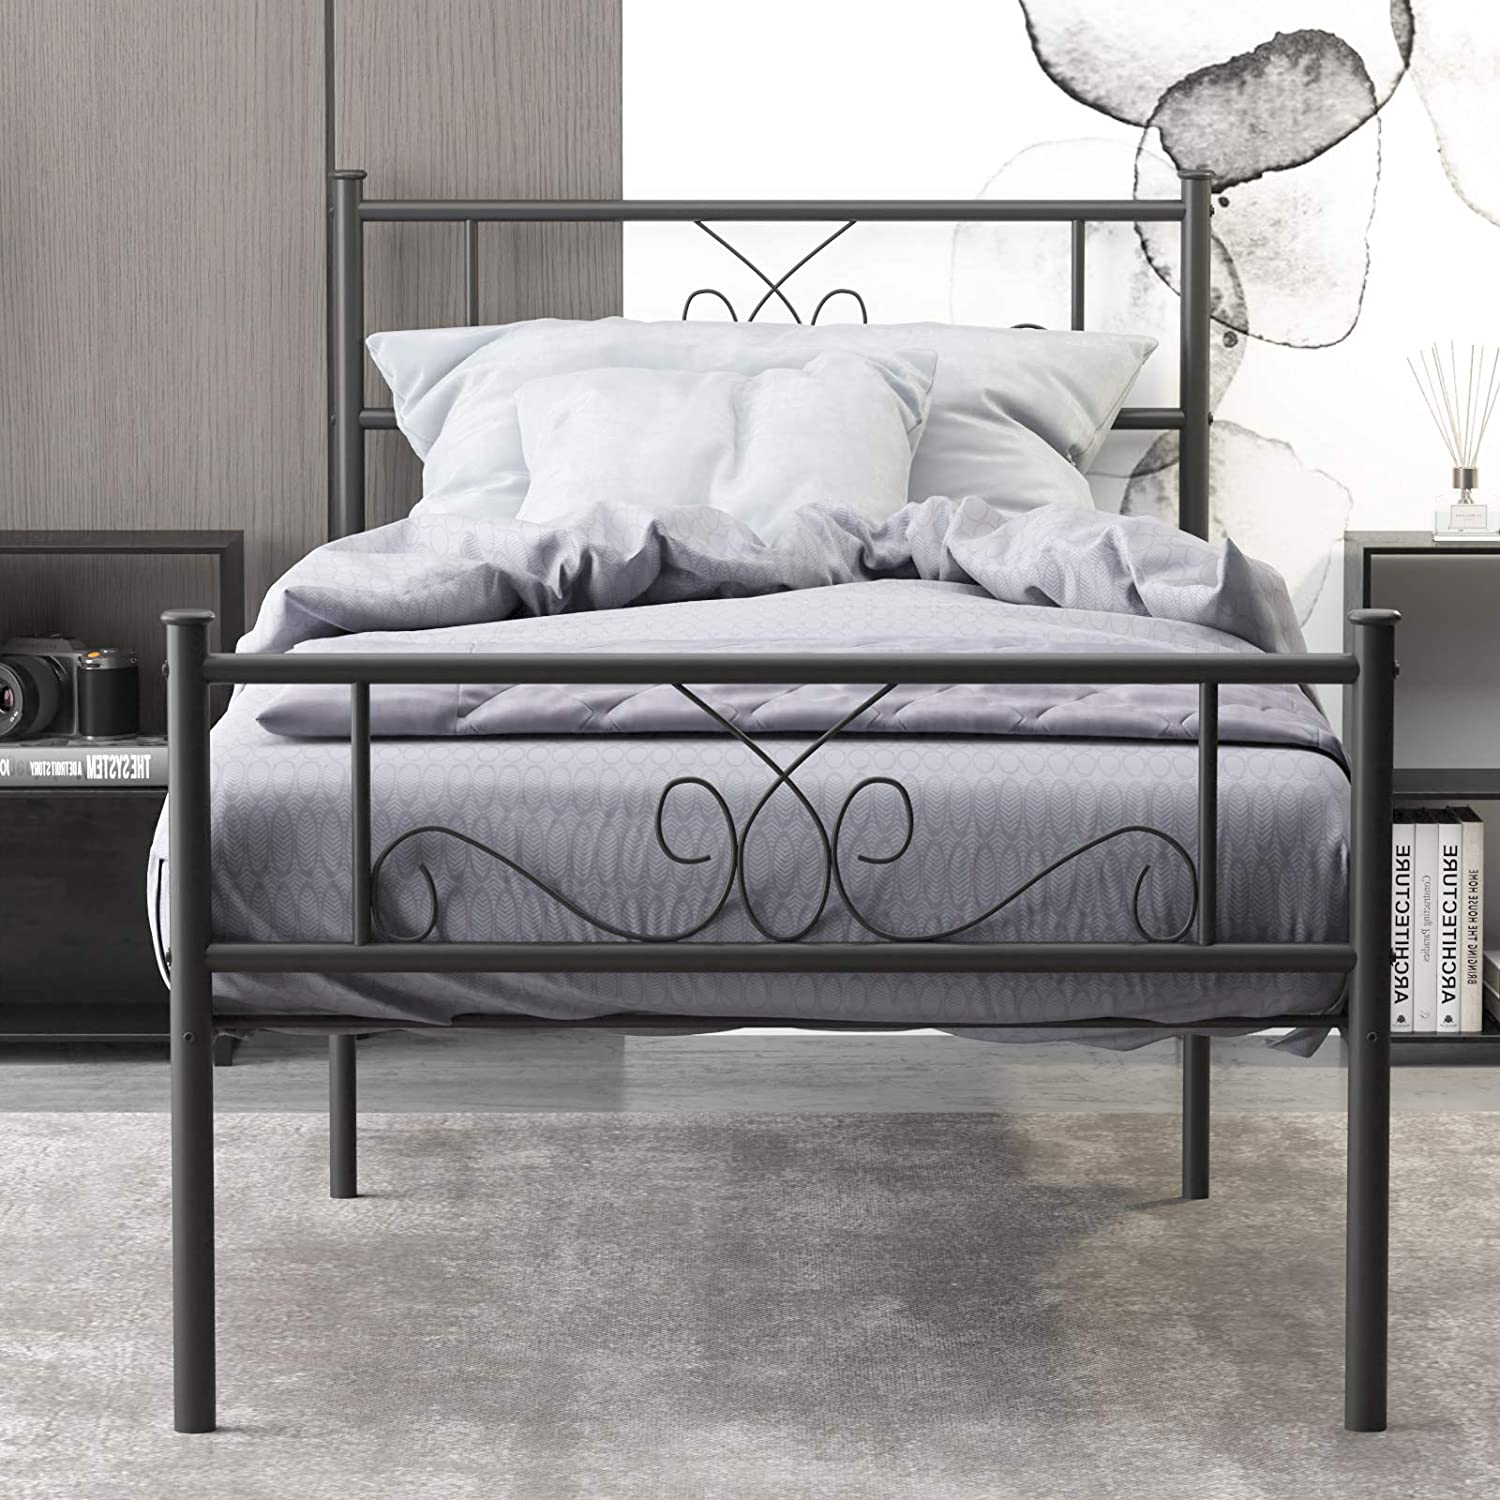 Best for Versatility Twin Bed: WeeHom Metal